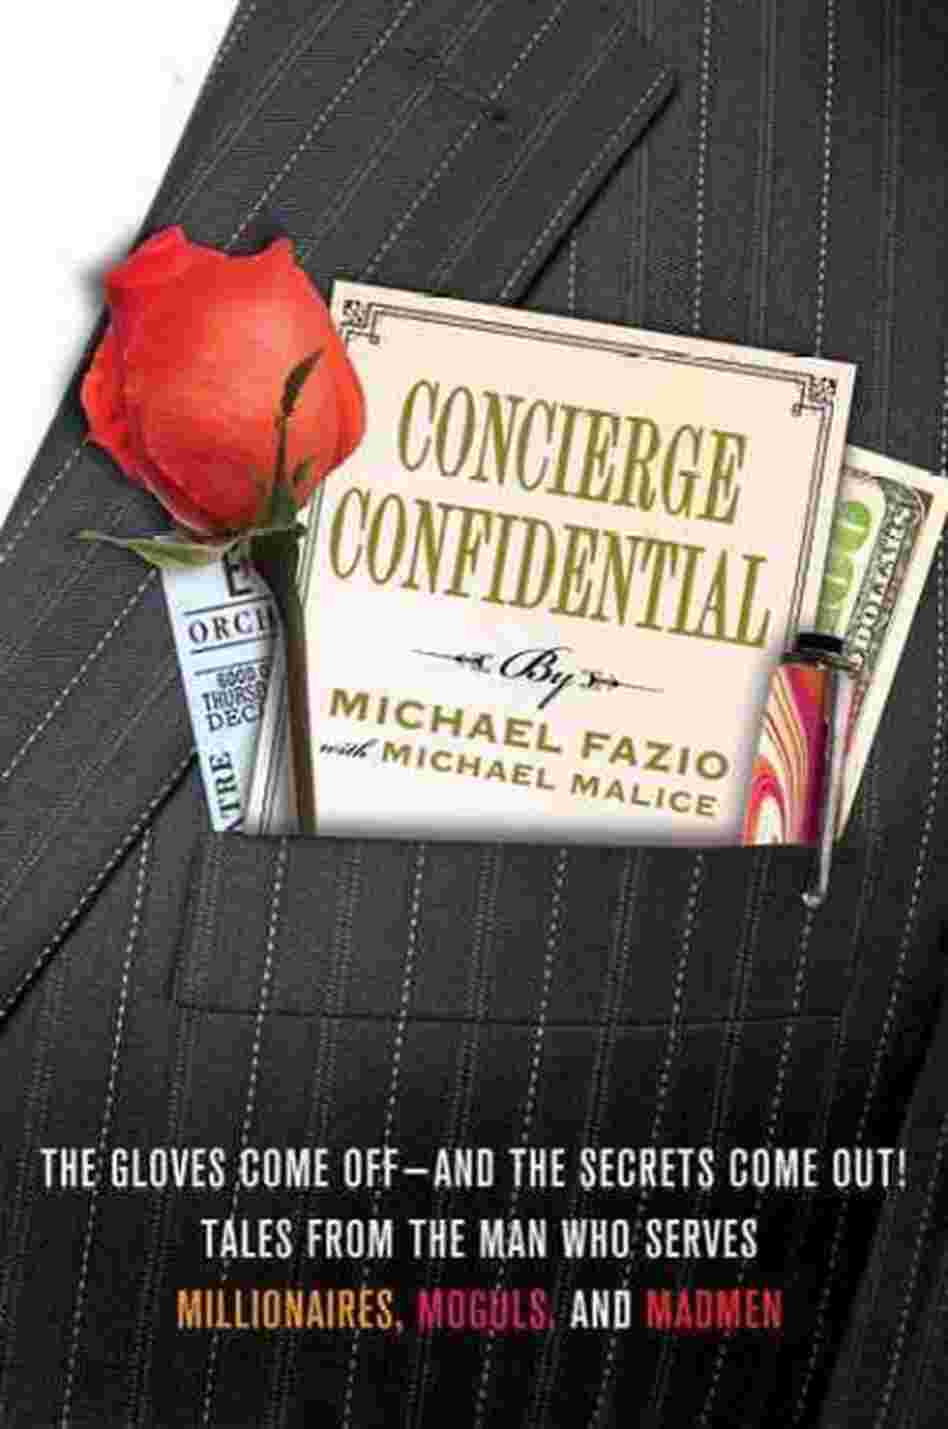 Concierge Confidential